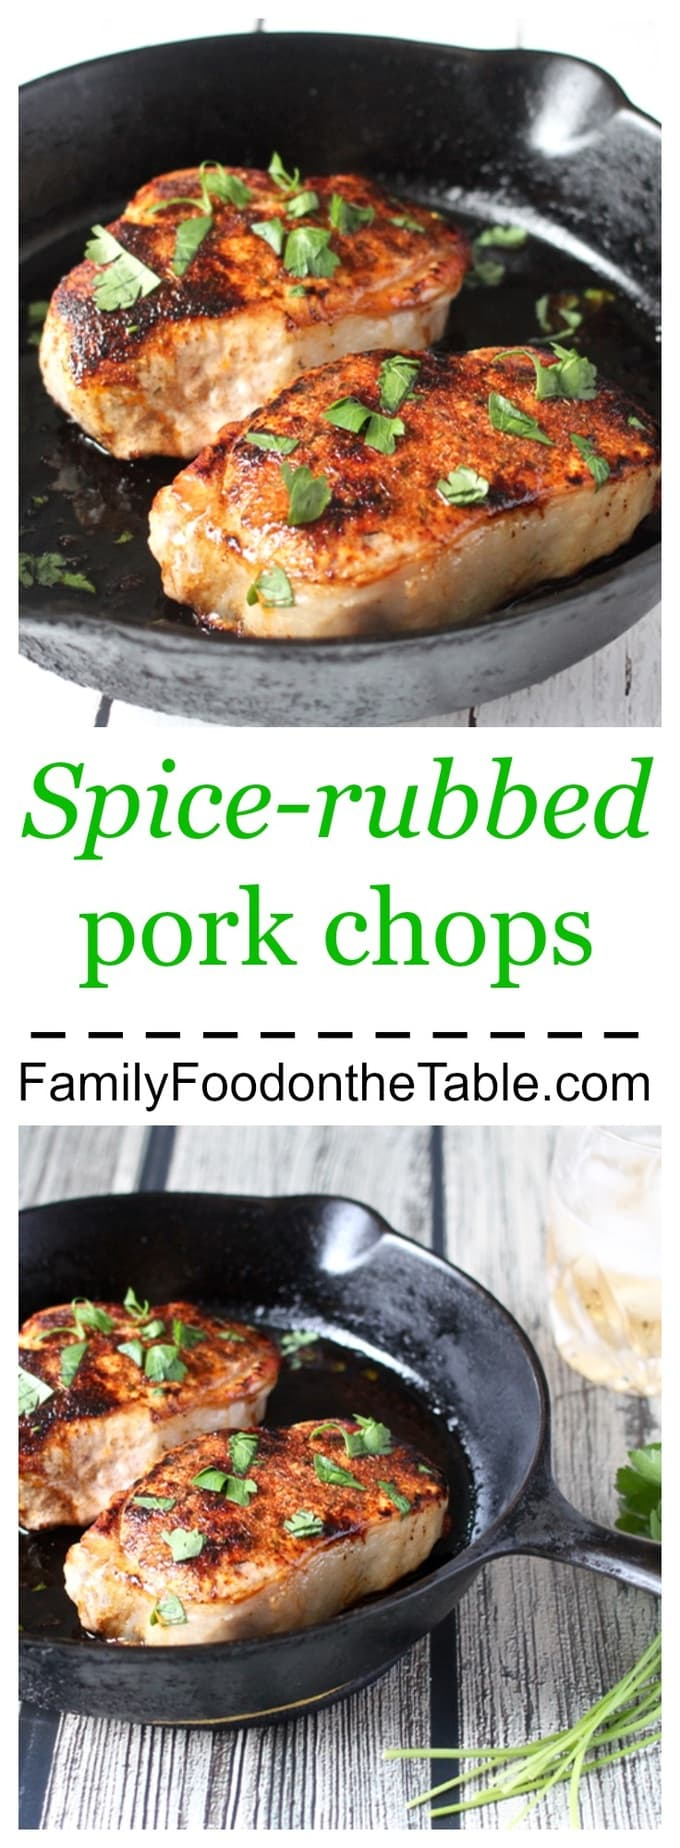 The bold spice mixture brings tons of flavor to these easy pork chops!